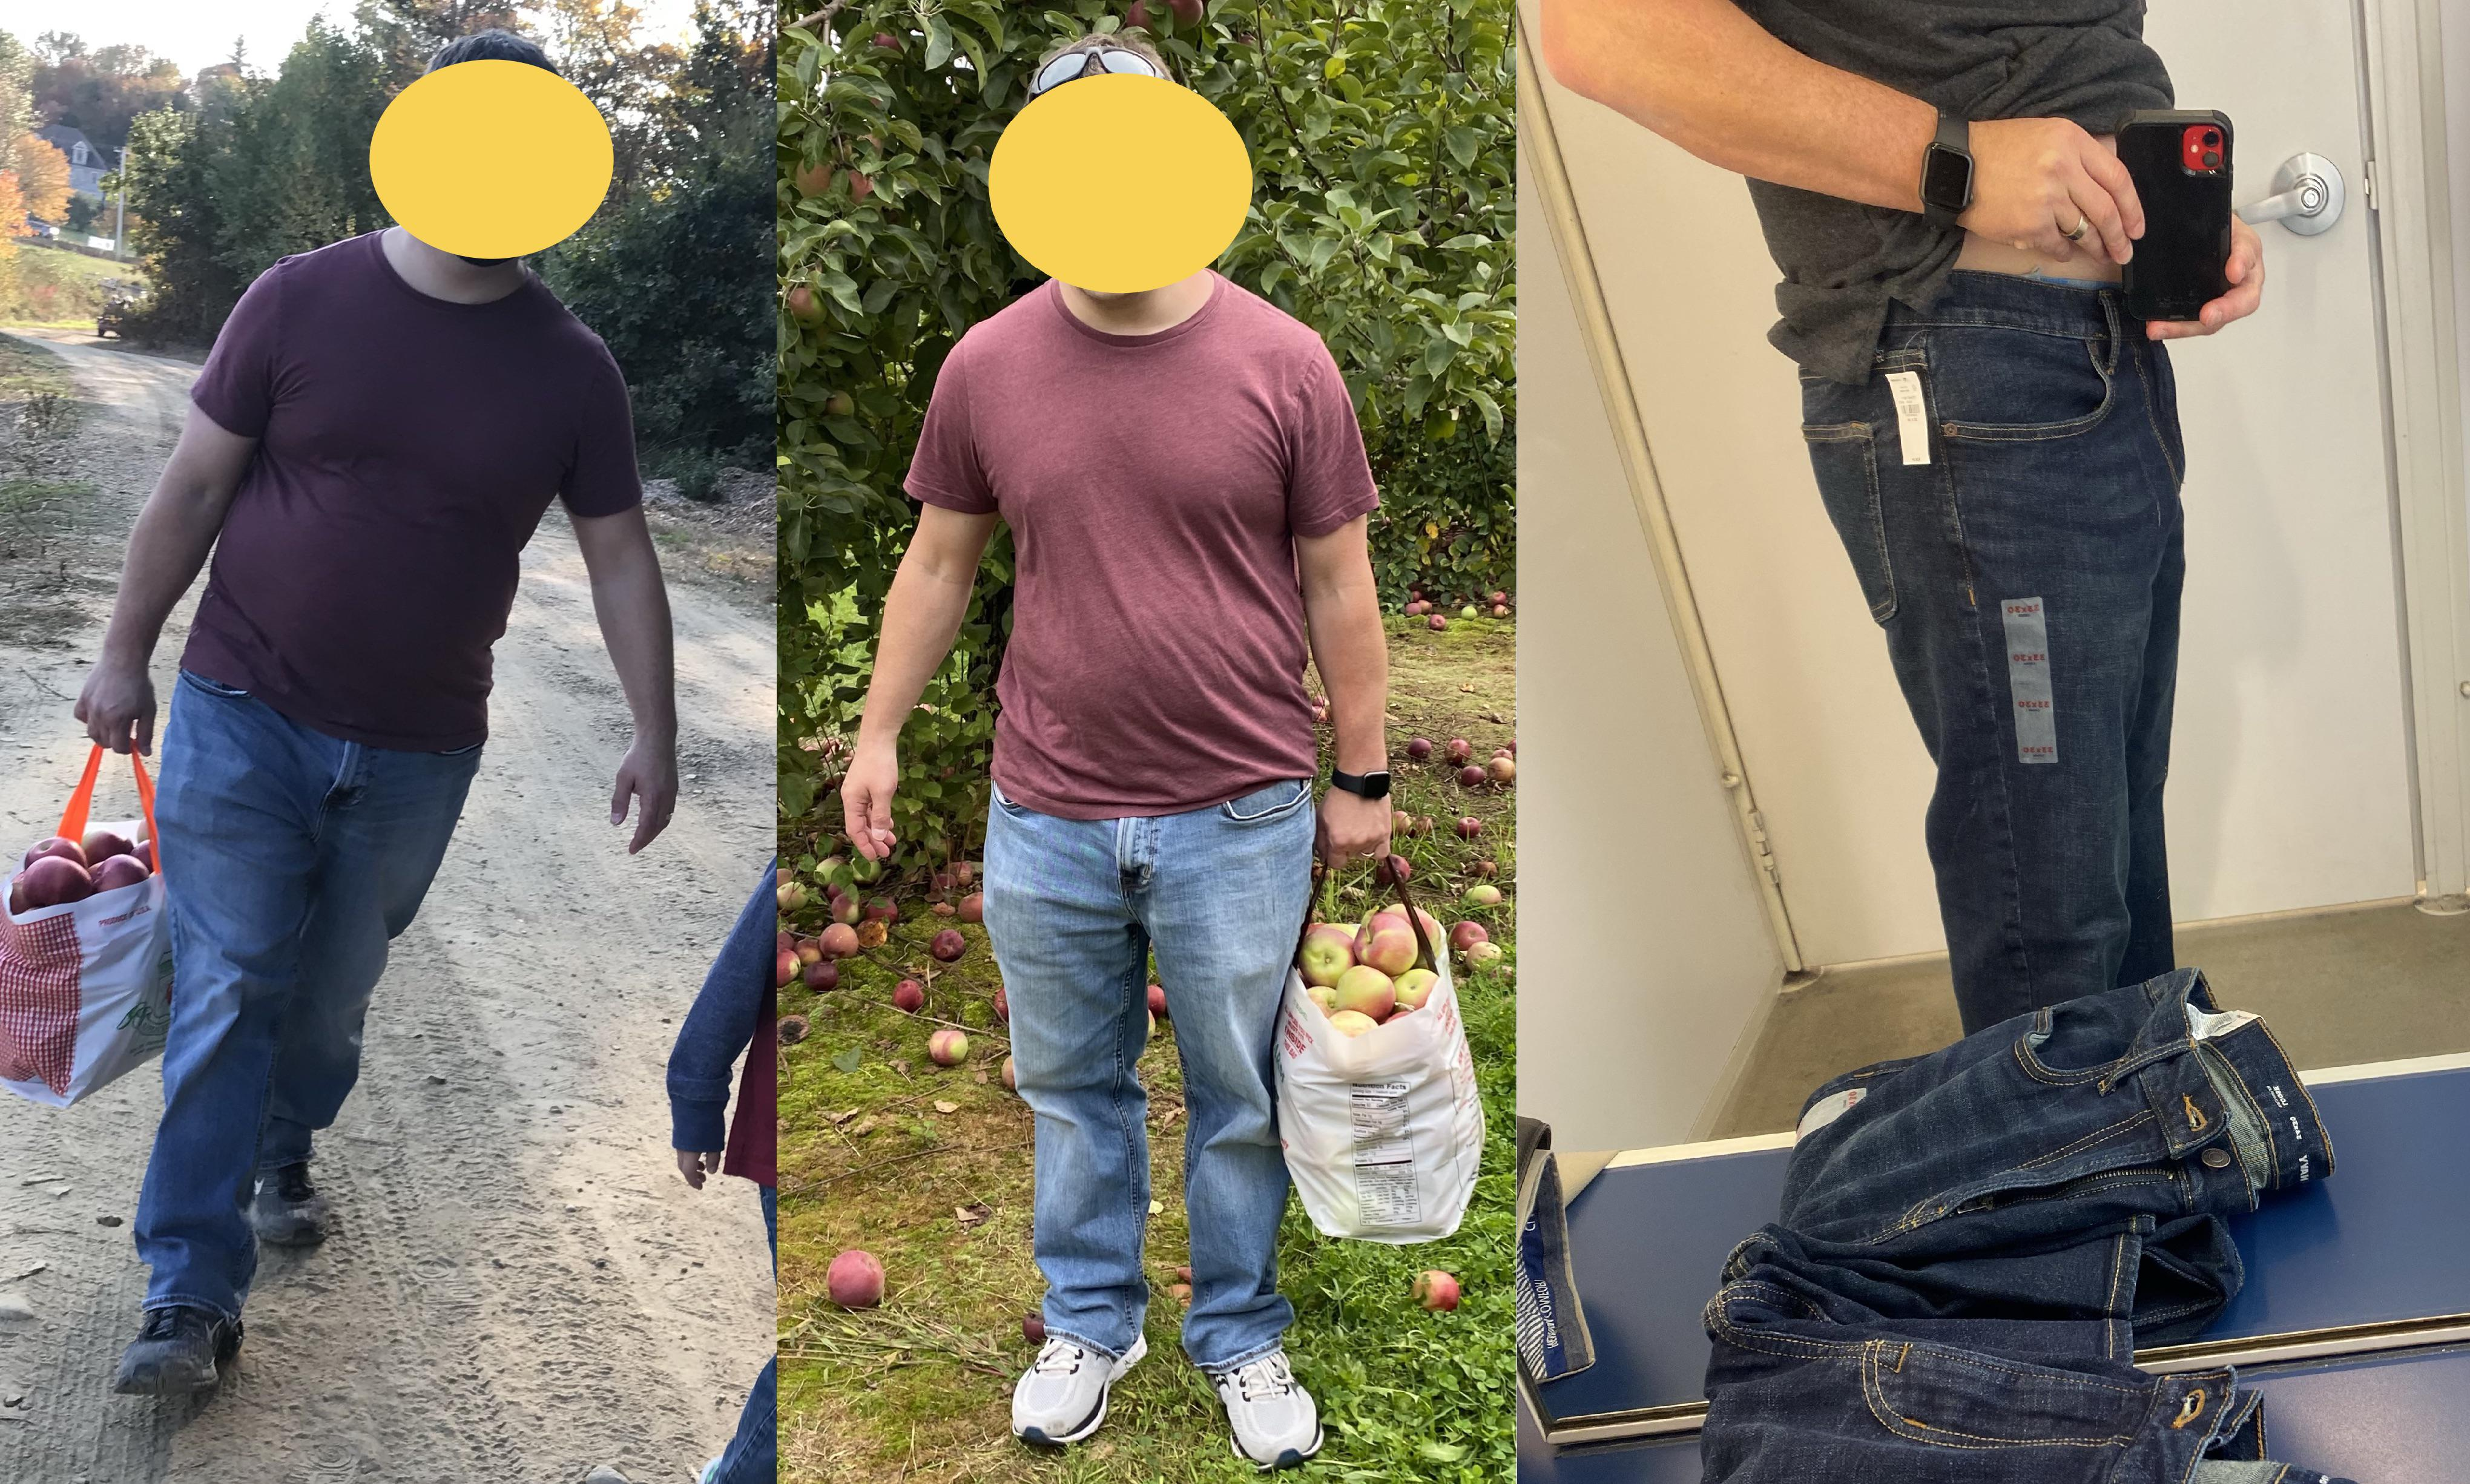 5'7 Male 30 lbs Weight Loss Before and After 215 lbs to 185 lbs